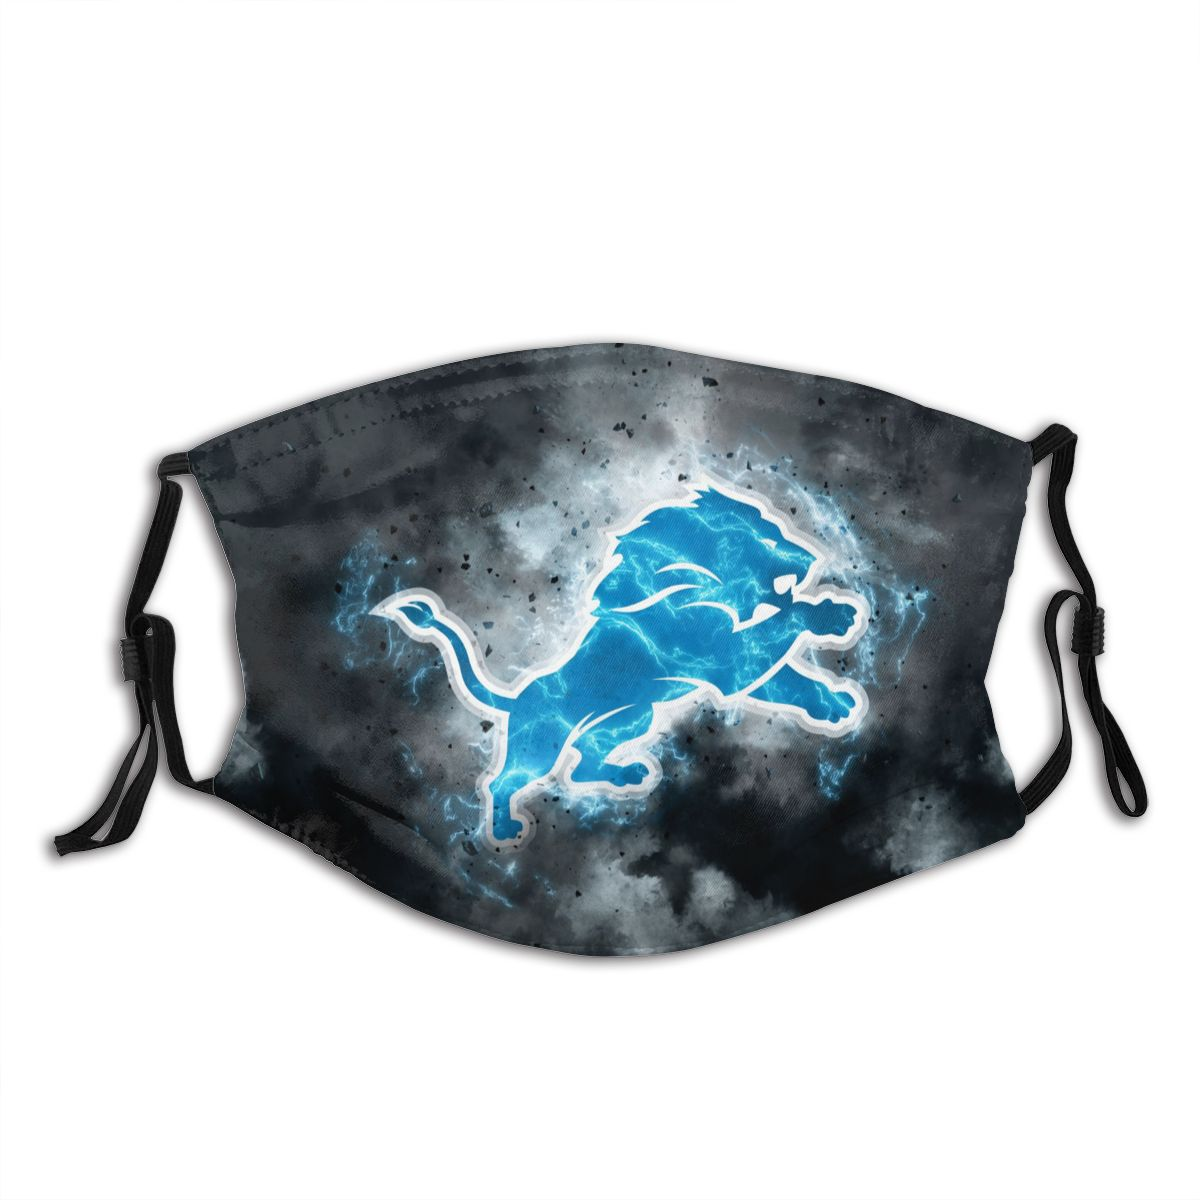 Lions Illustration Art Adult Cloth Face Covering With Filter